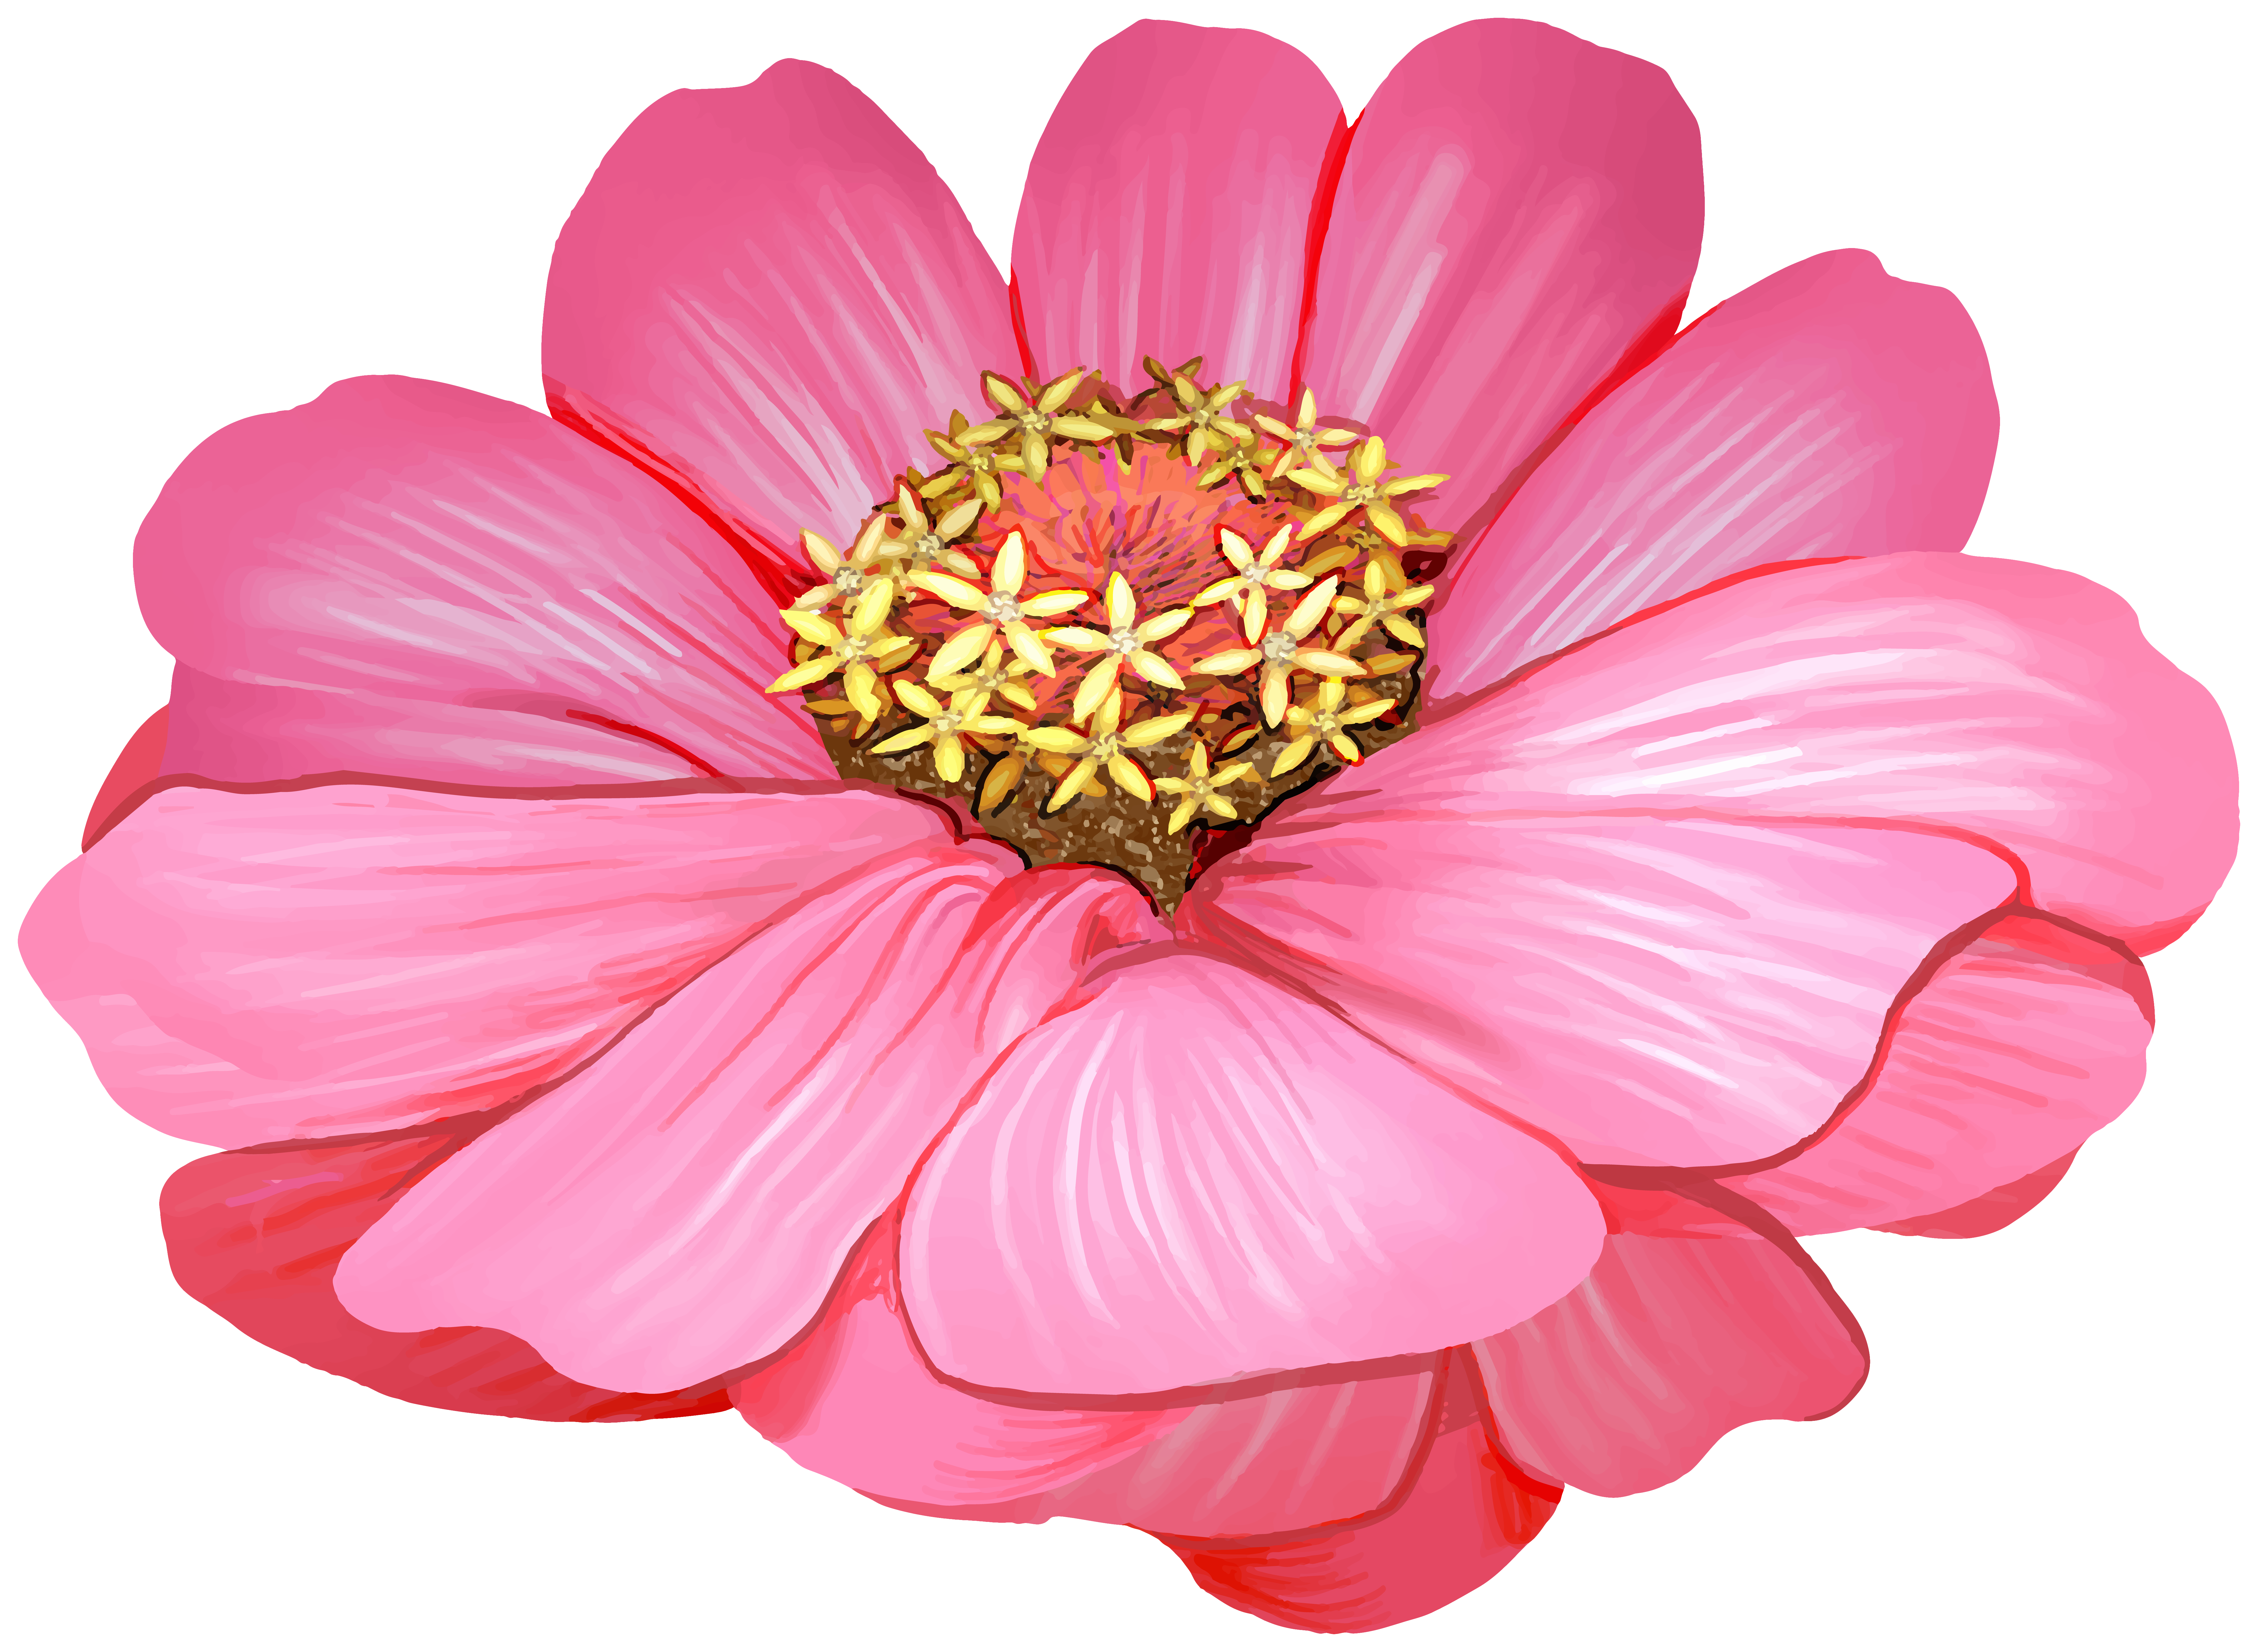 Pink Zinnia Flower Transparent Image.